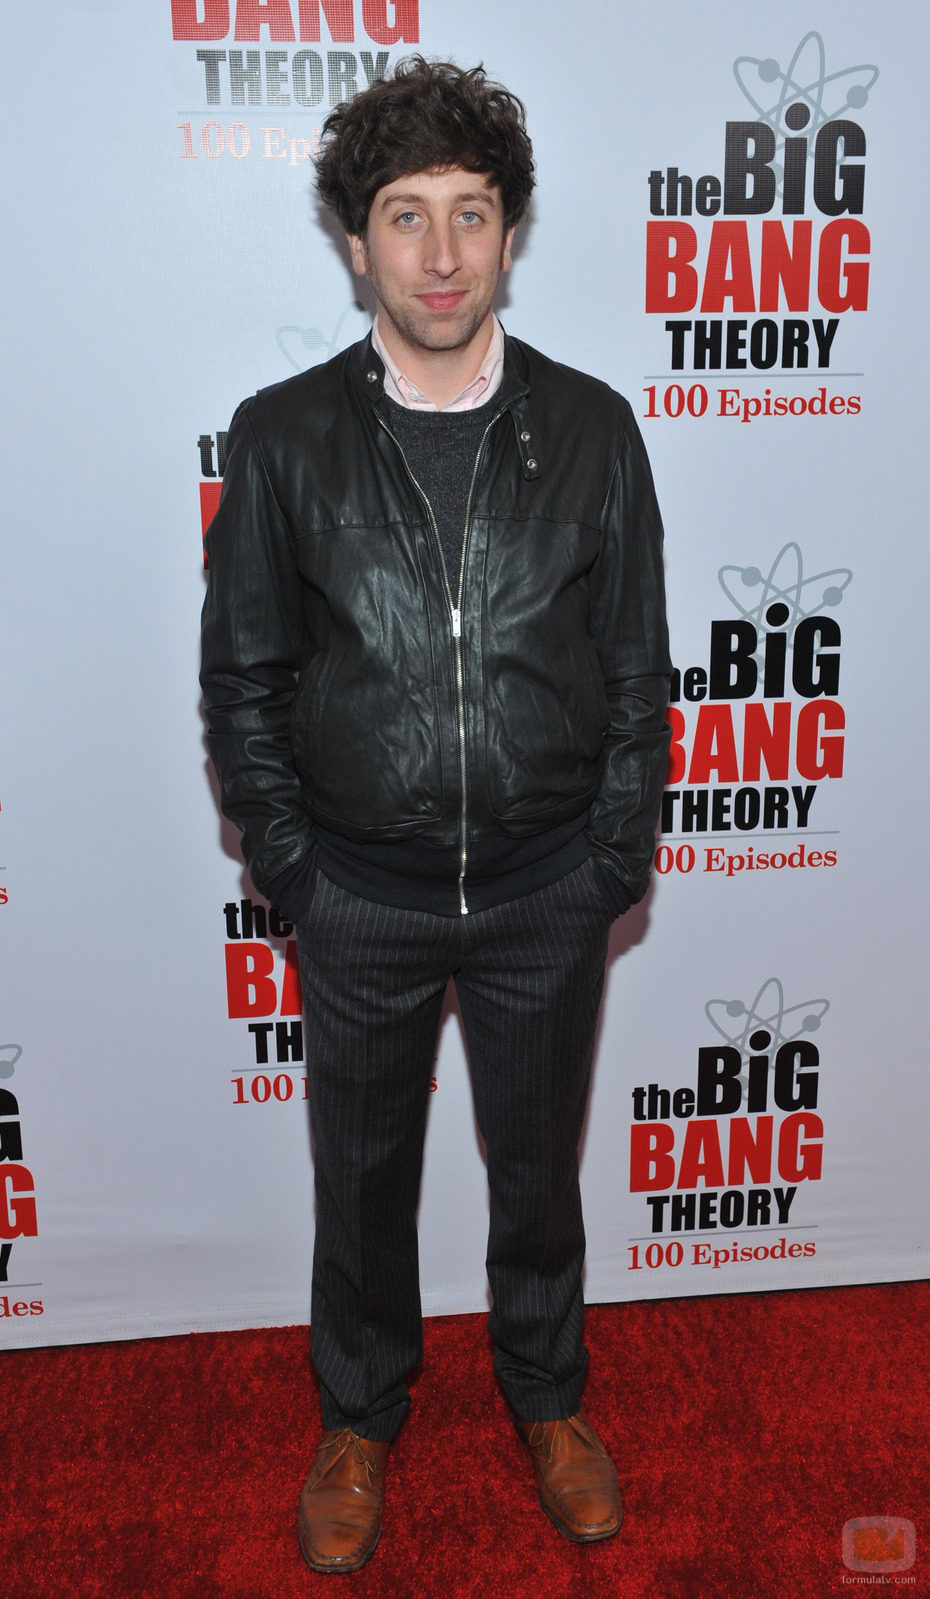 Simon Helberg en la fiesta de 'The Big Bang Theory'